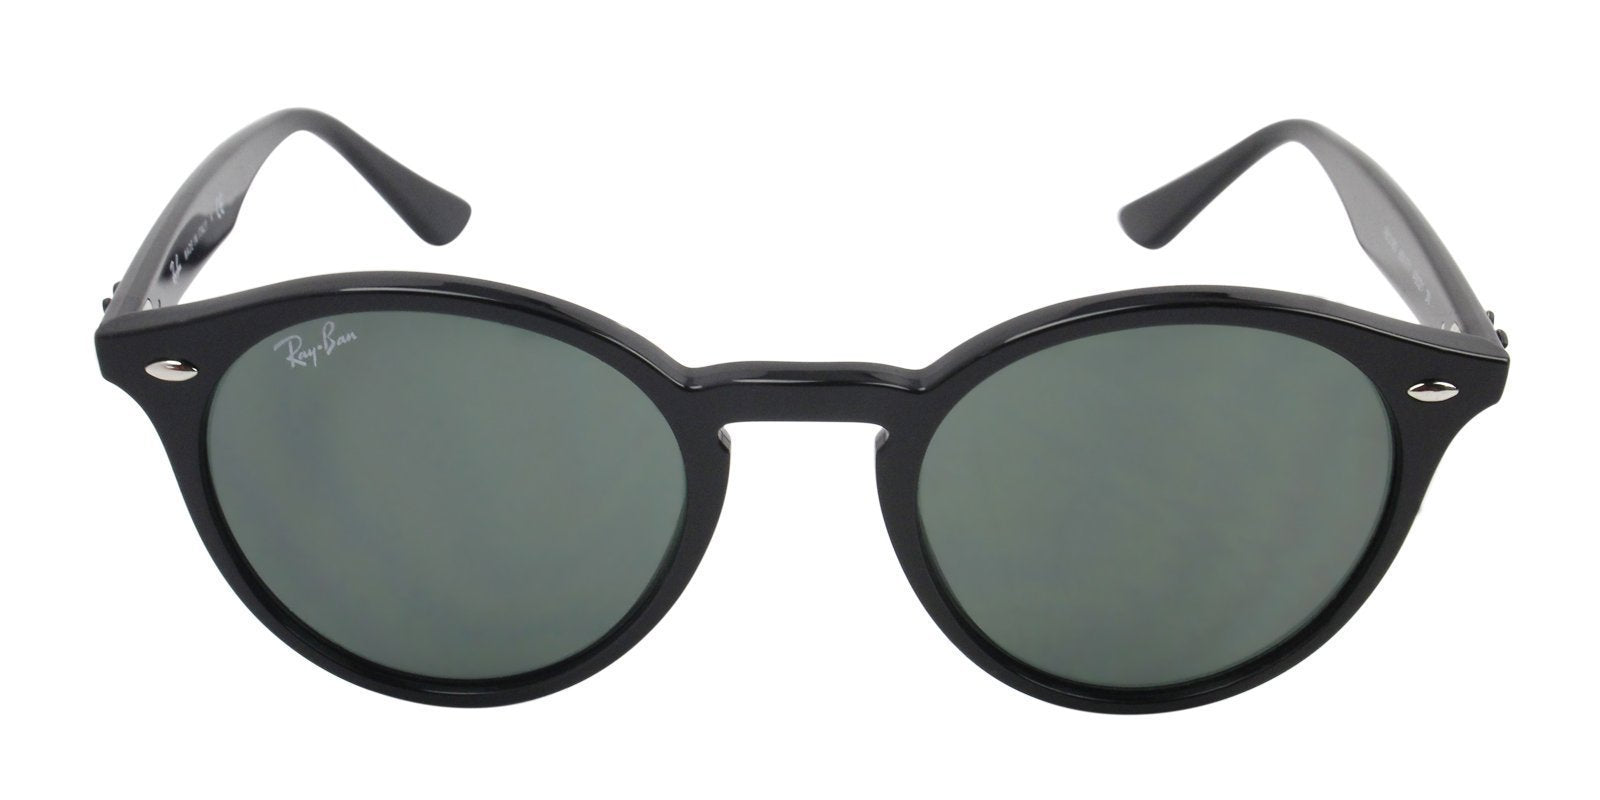 Ray Ban - RB2180 Black Oval Men Sunglasses - 50mm-Sunglasses-Designer Eyes